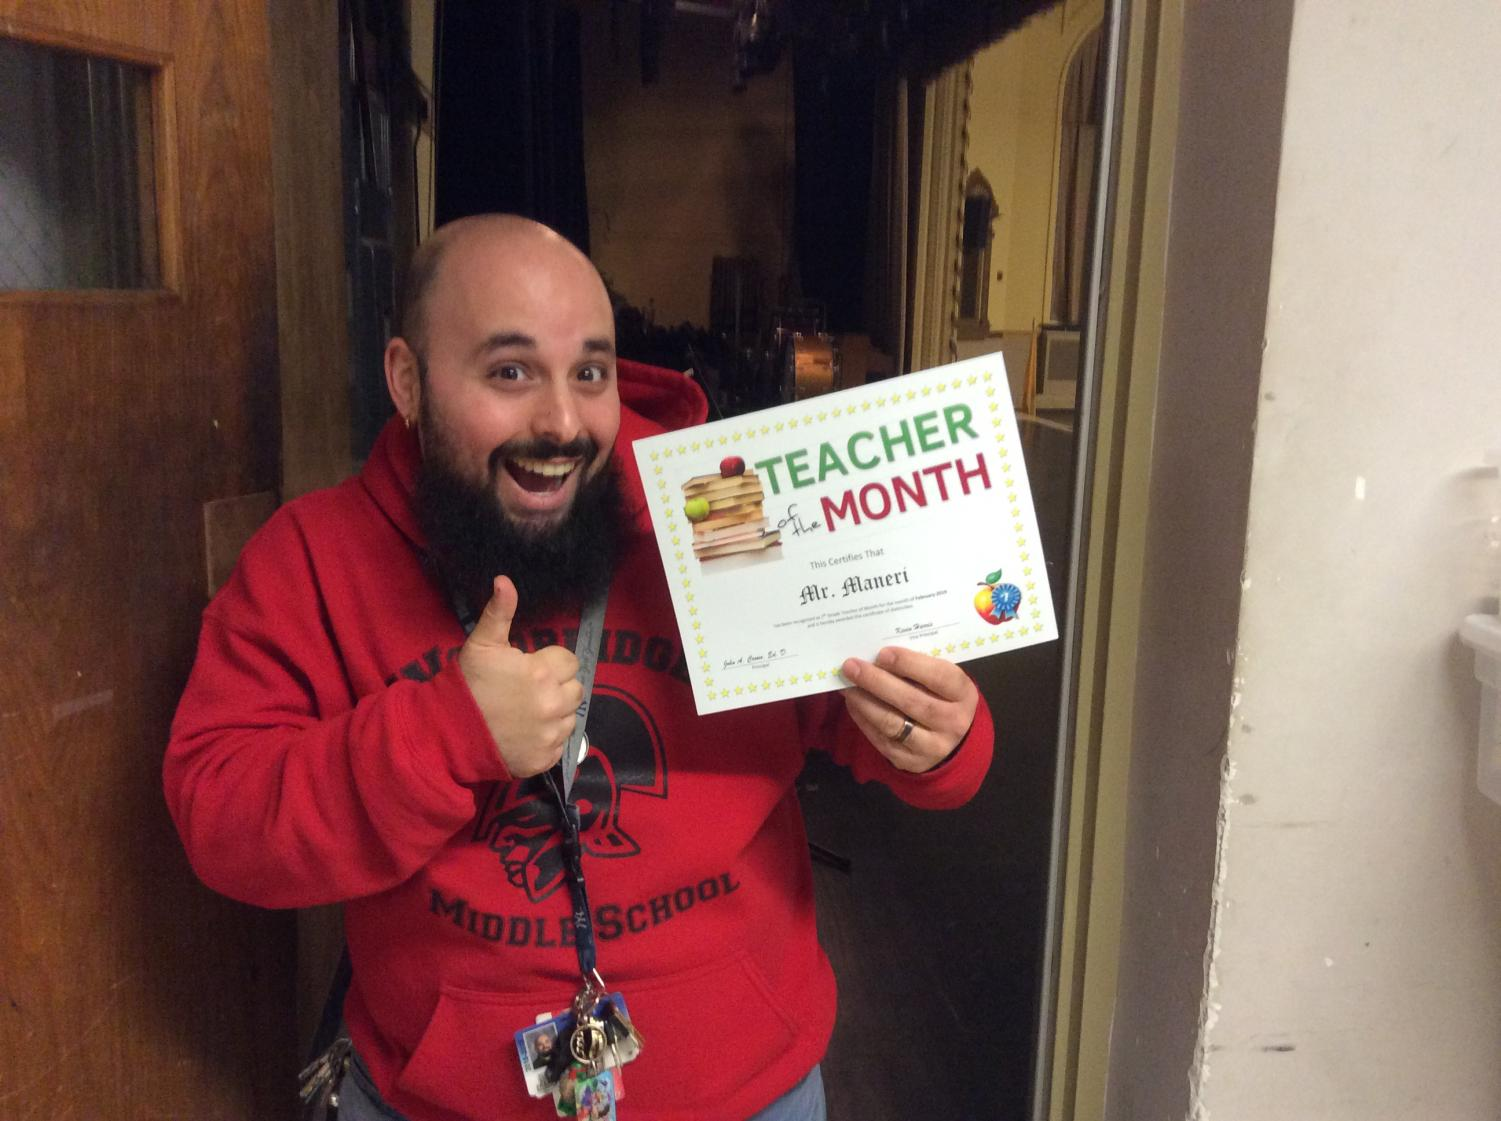 Mr Maneri poses for the teacher of the month award